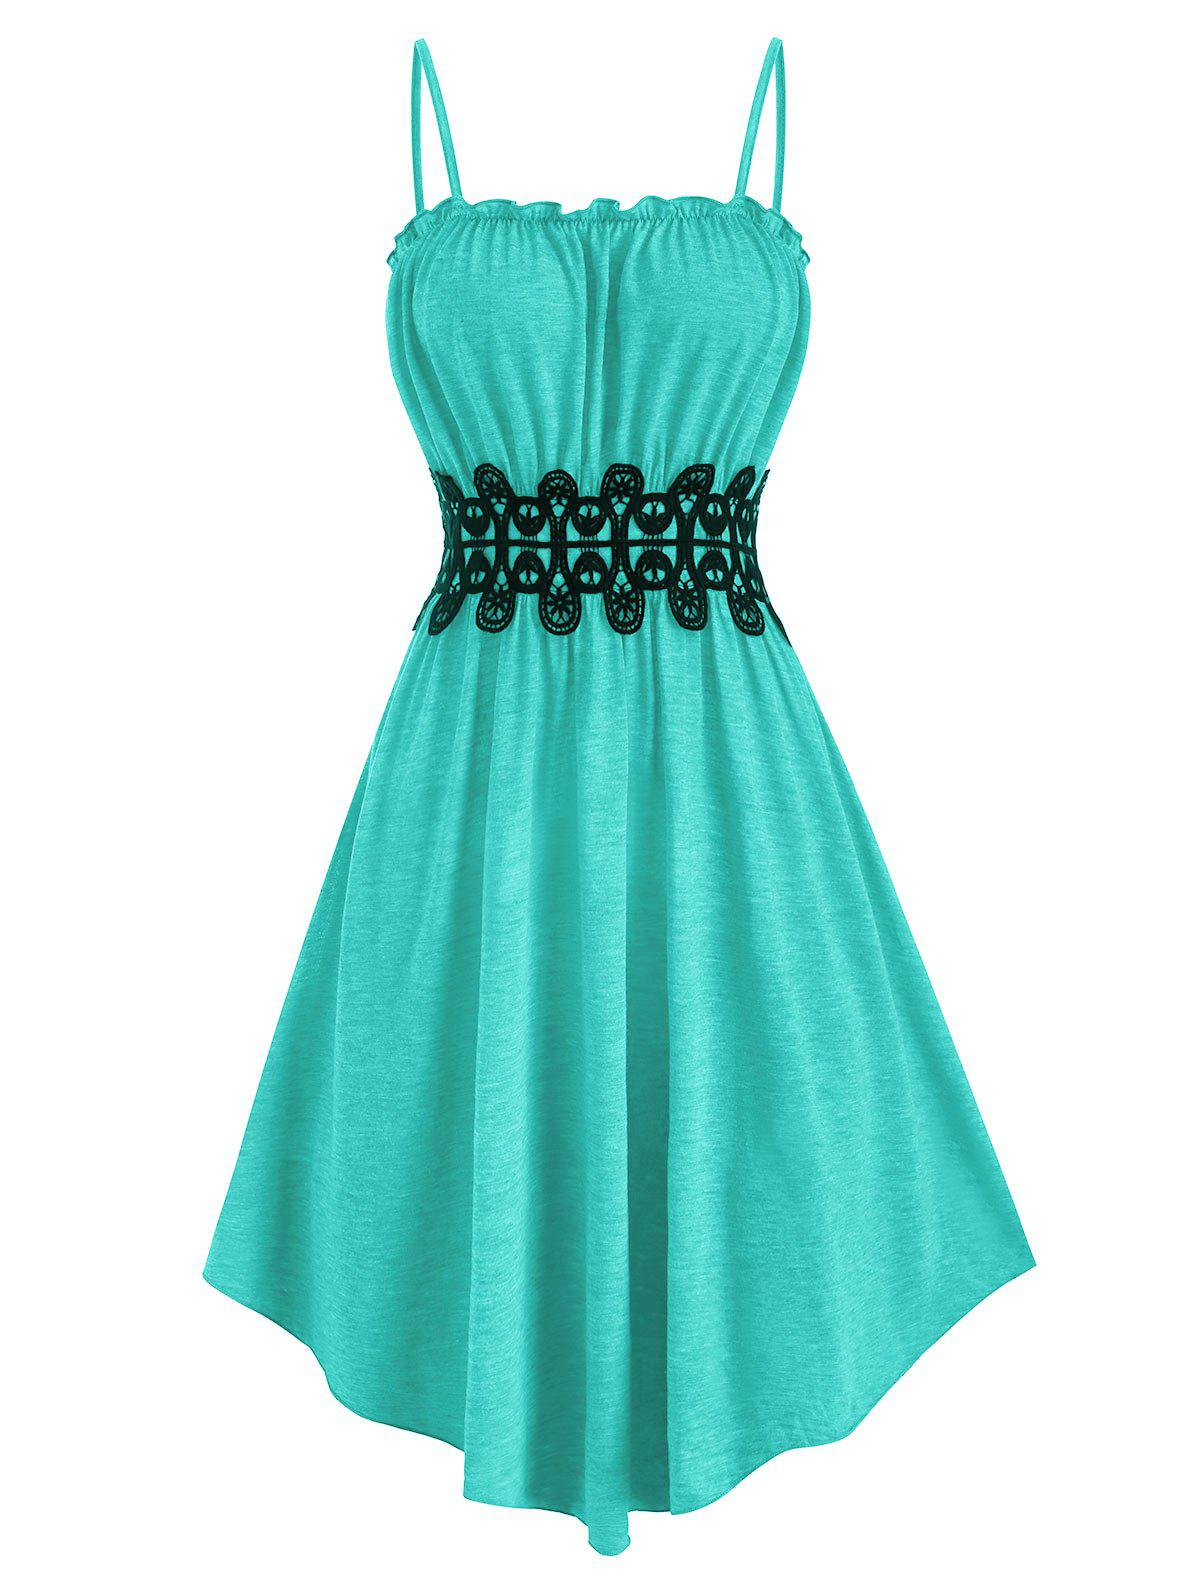 Frilled Lace Applique Cami Dress - BLUE 2XL